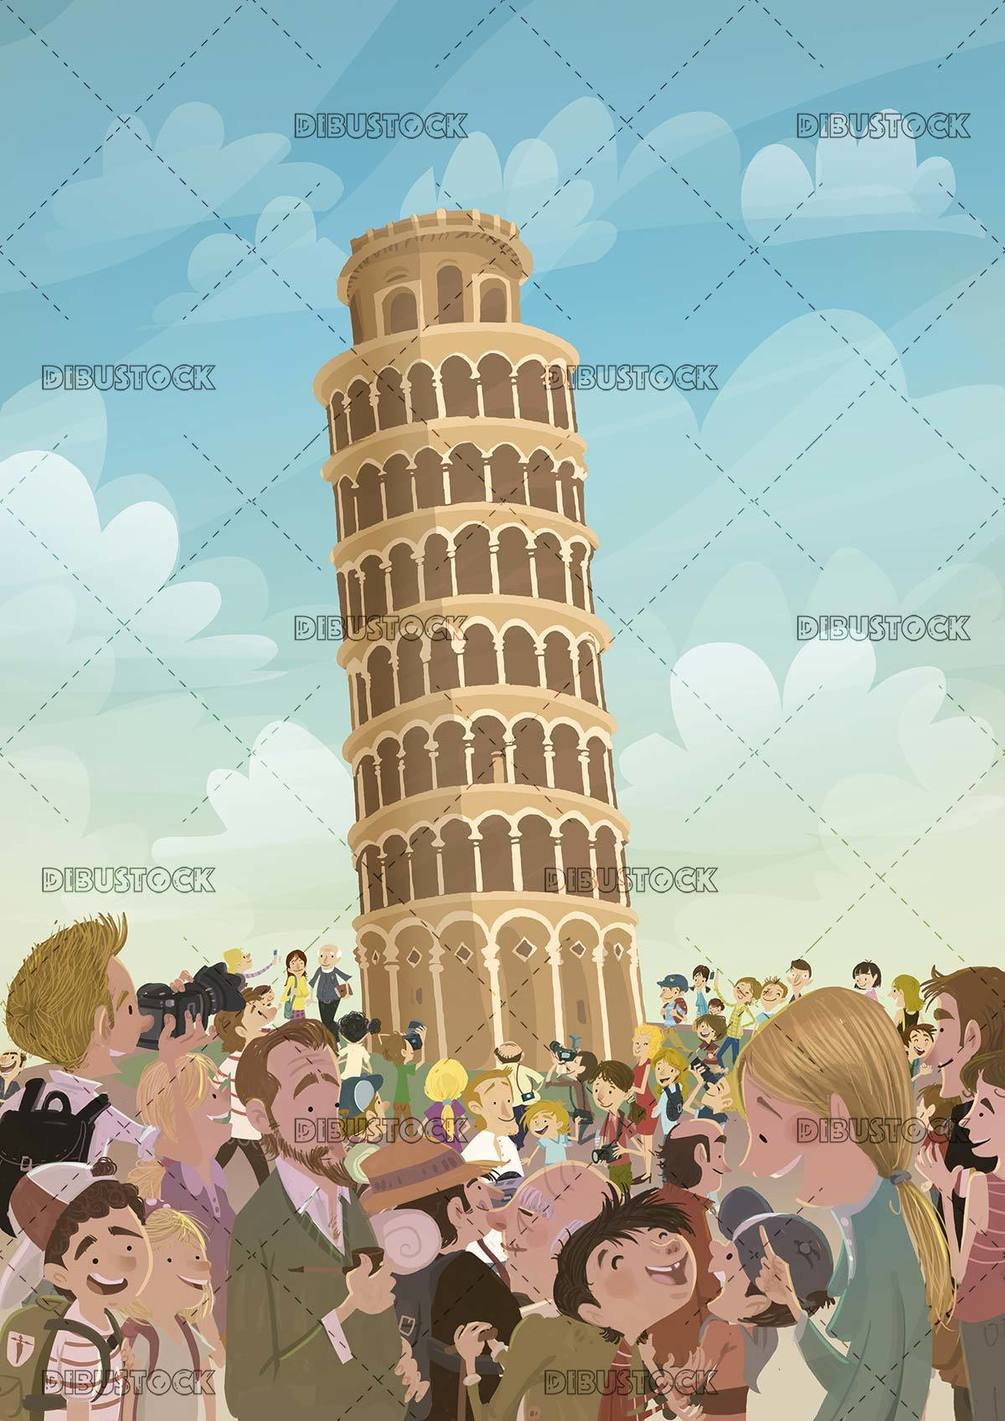 The tower of Pisa visited and admired by tourists